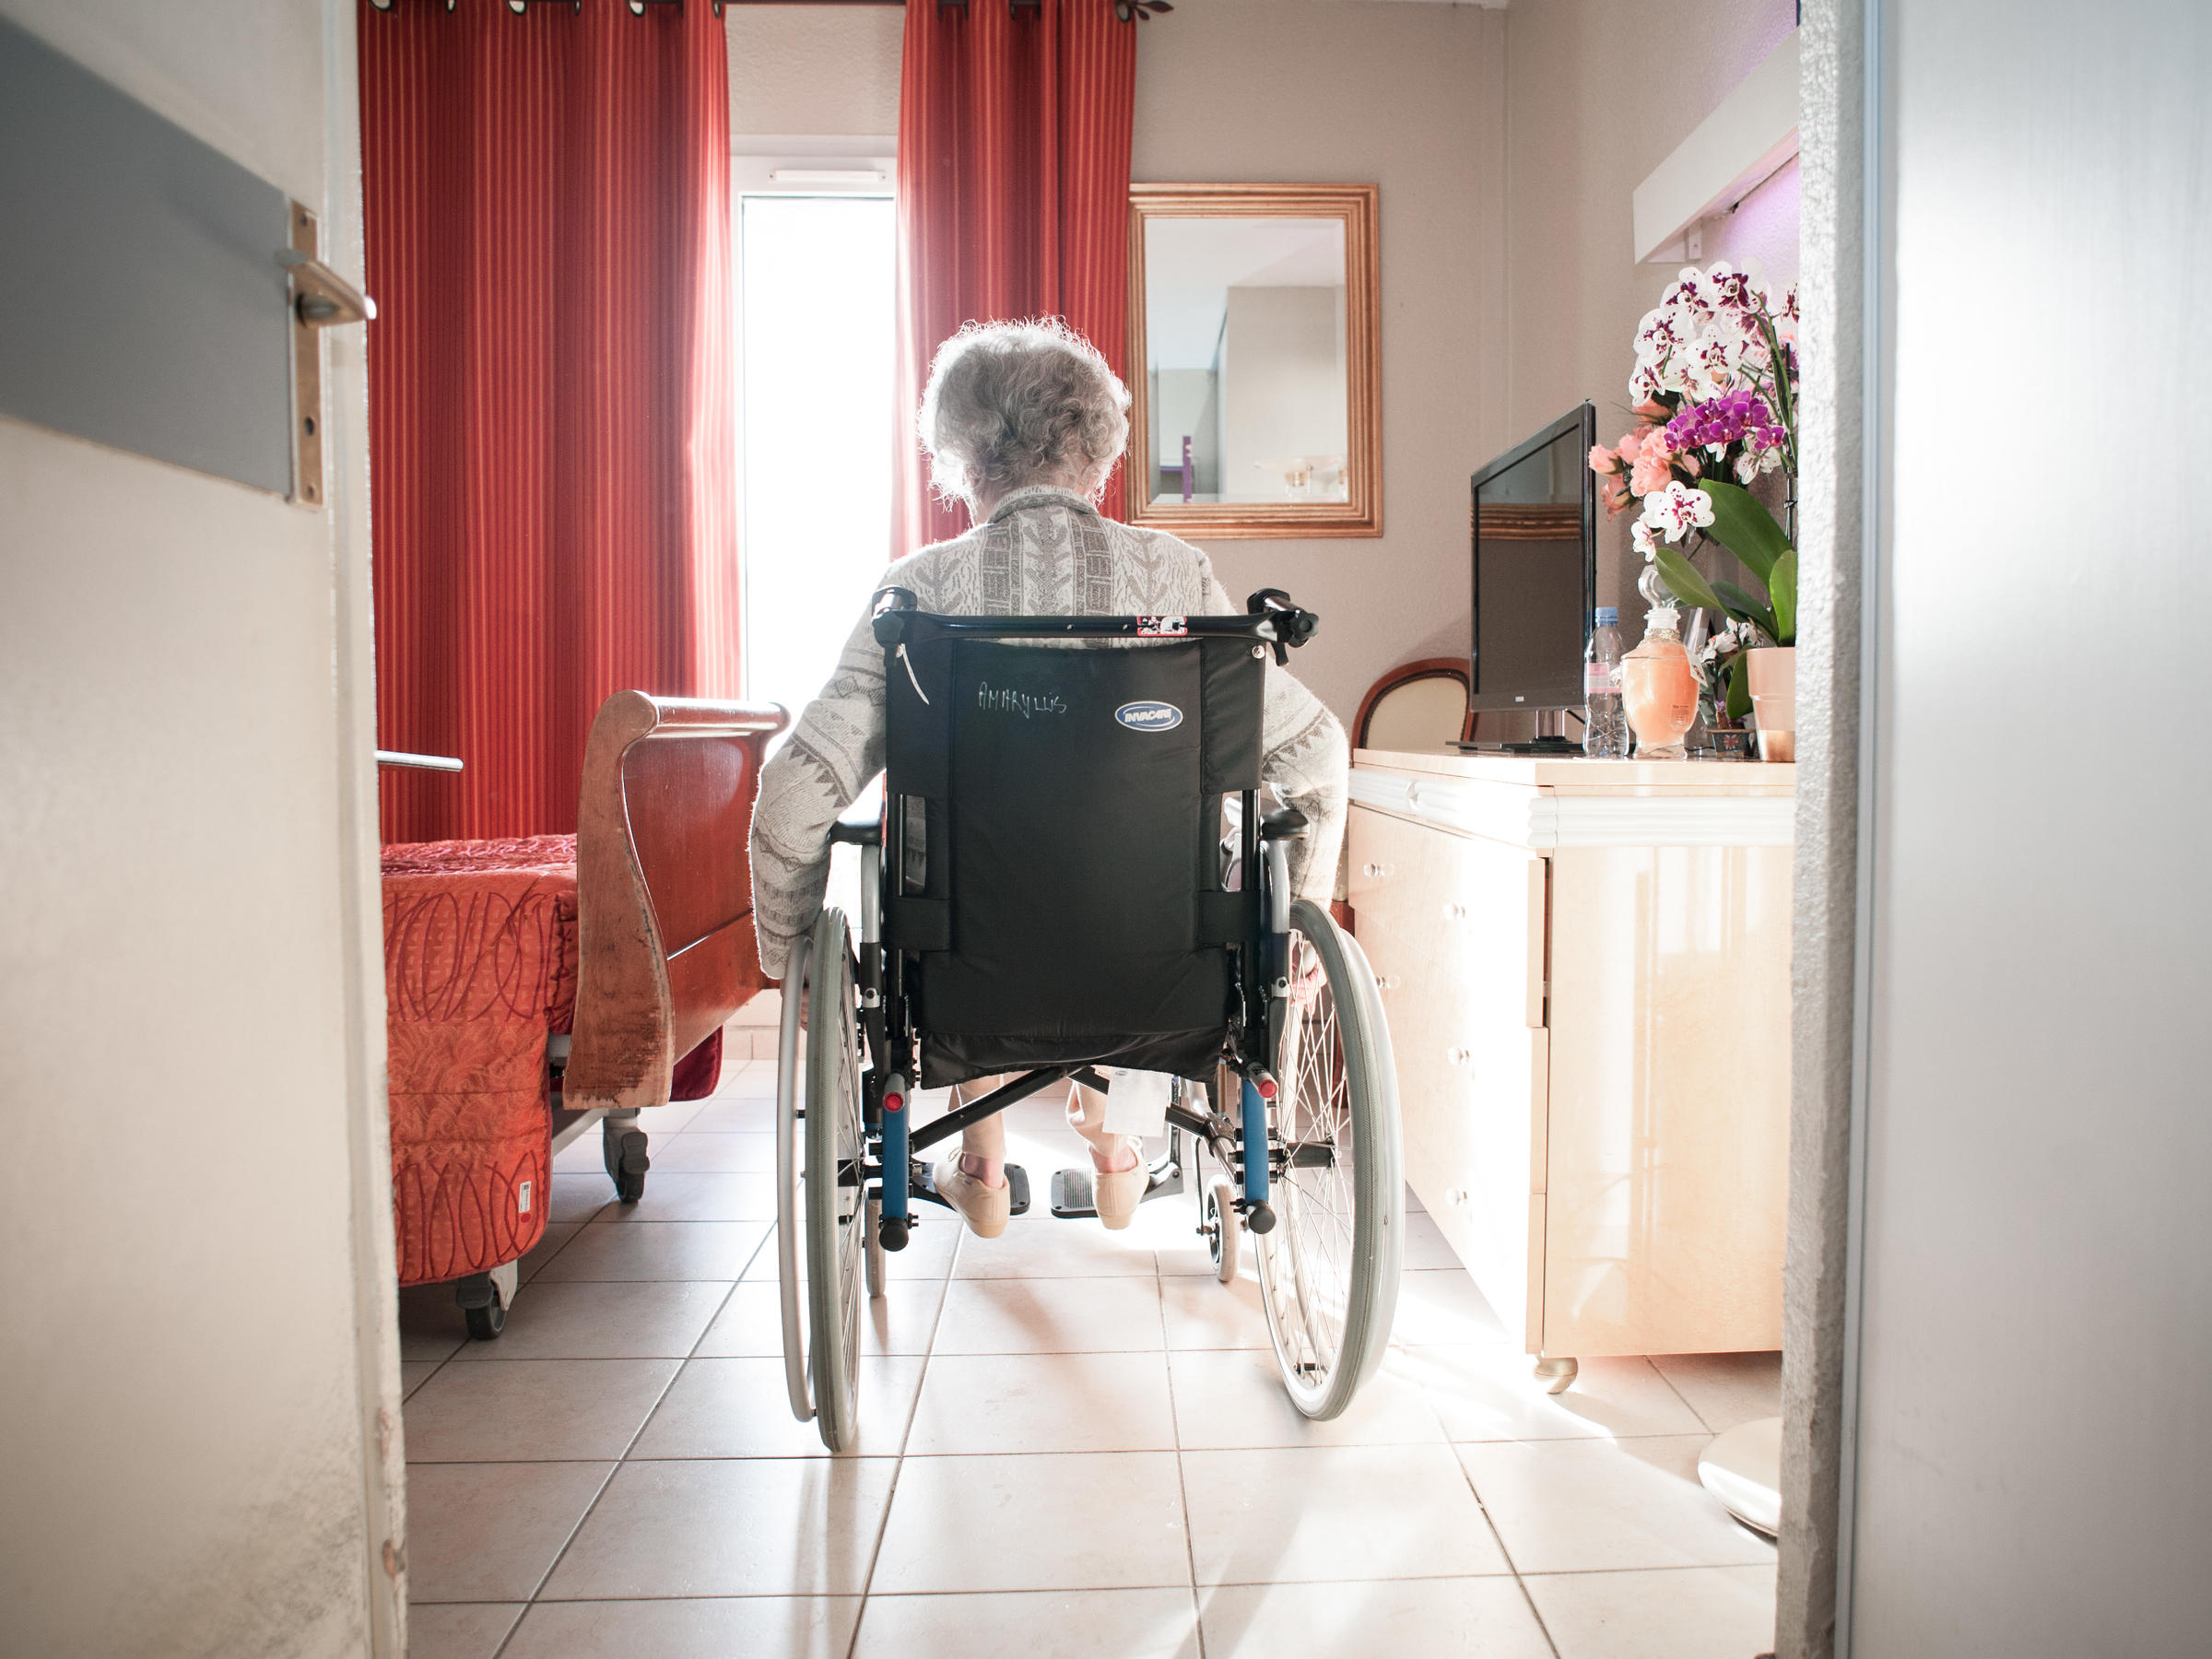 Medicare To Cut Payments To Nursing Homes Whose ... on greenhouse model nursing home, wall art for nursing home, wagon wheel design plans nursing home,